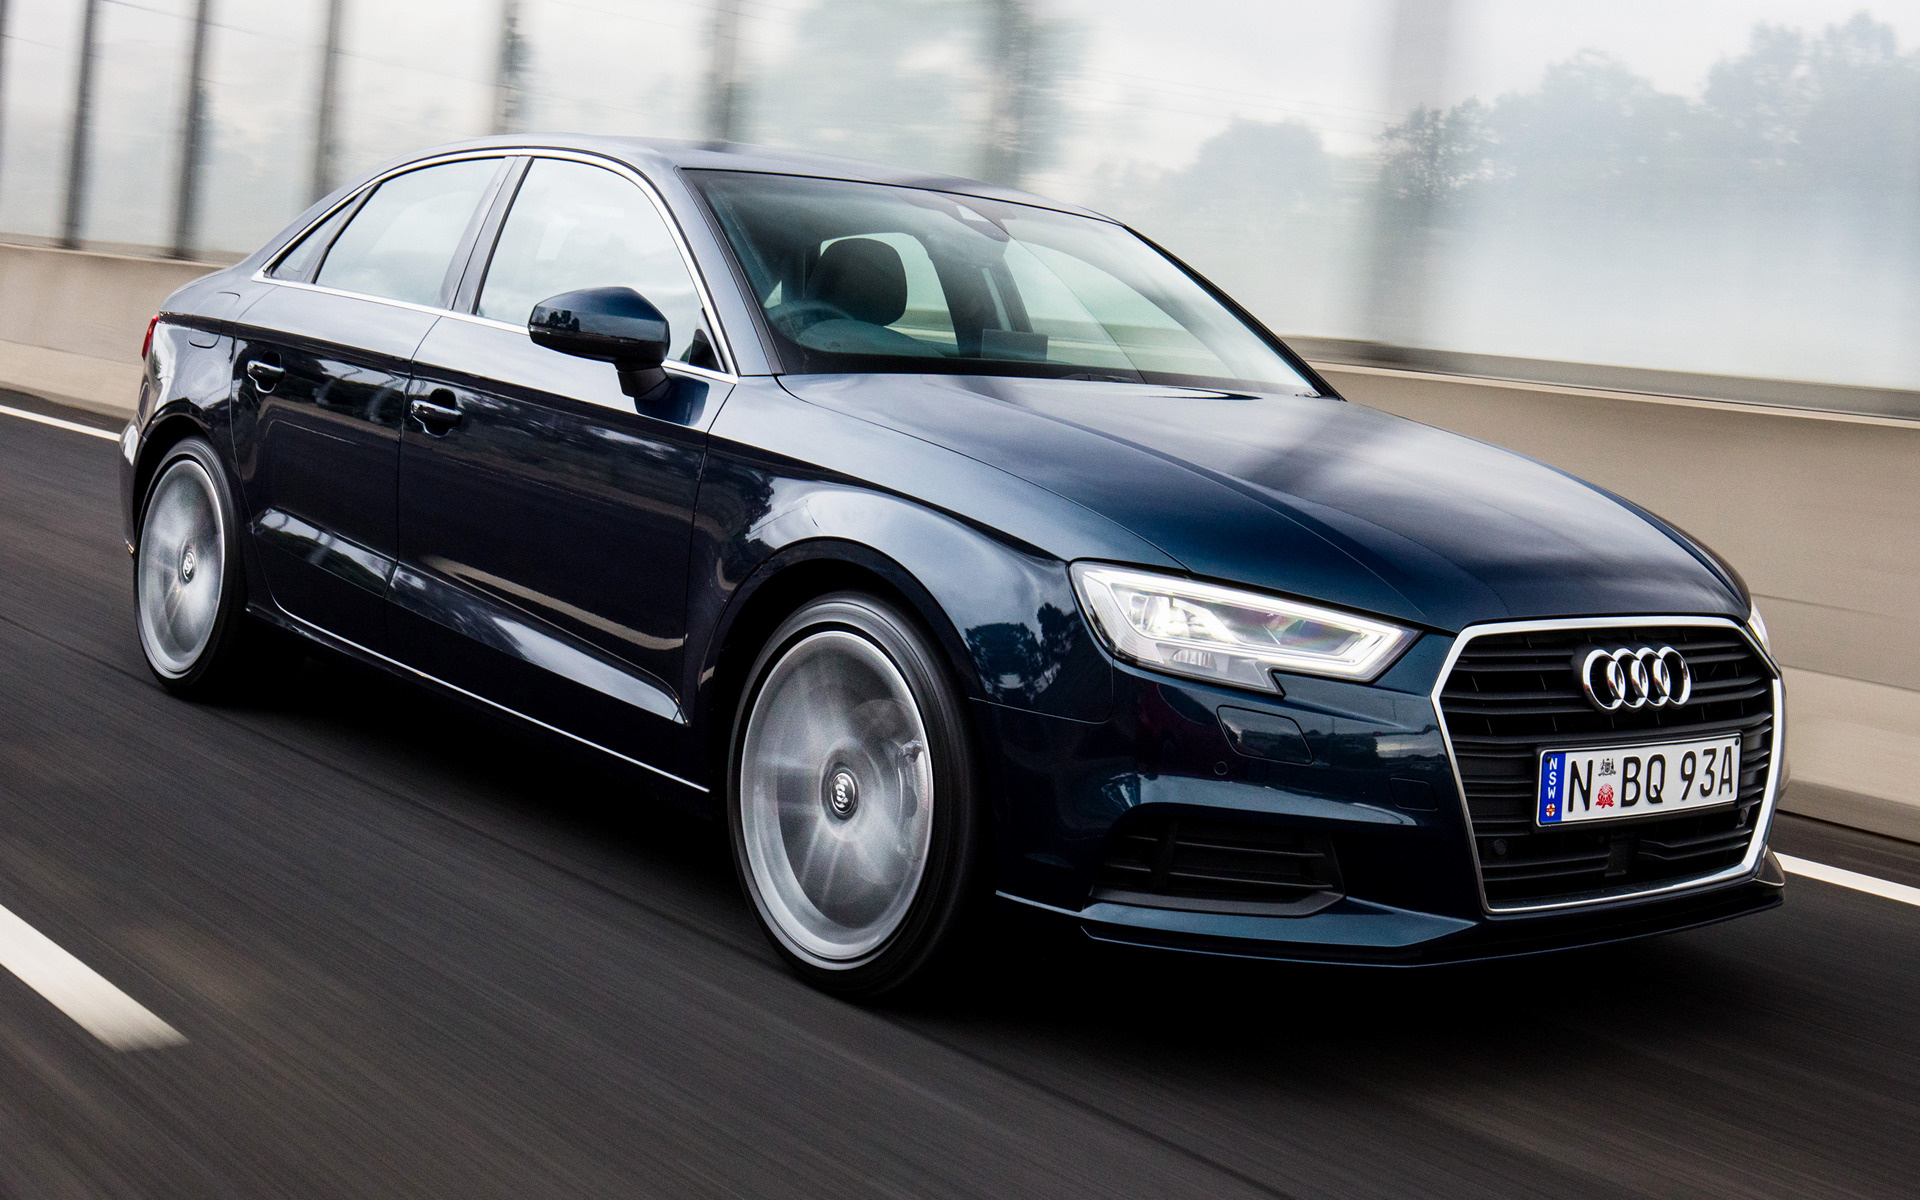 2016 Audi A3 Sedan Au Wallpapers And Hd Images Car Pixel S3 1920x1200